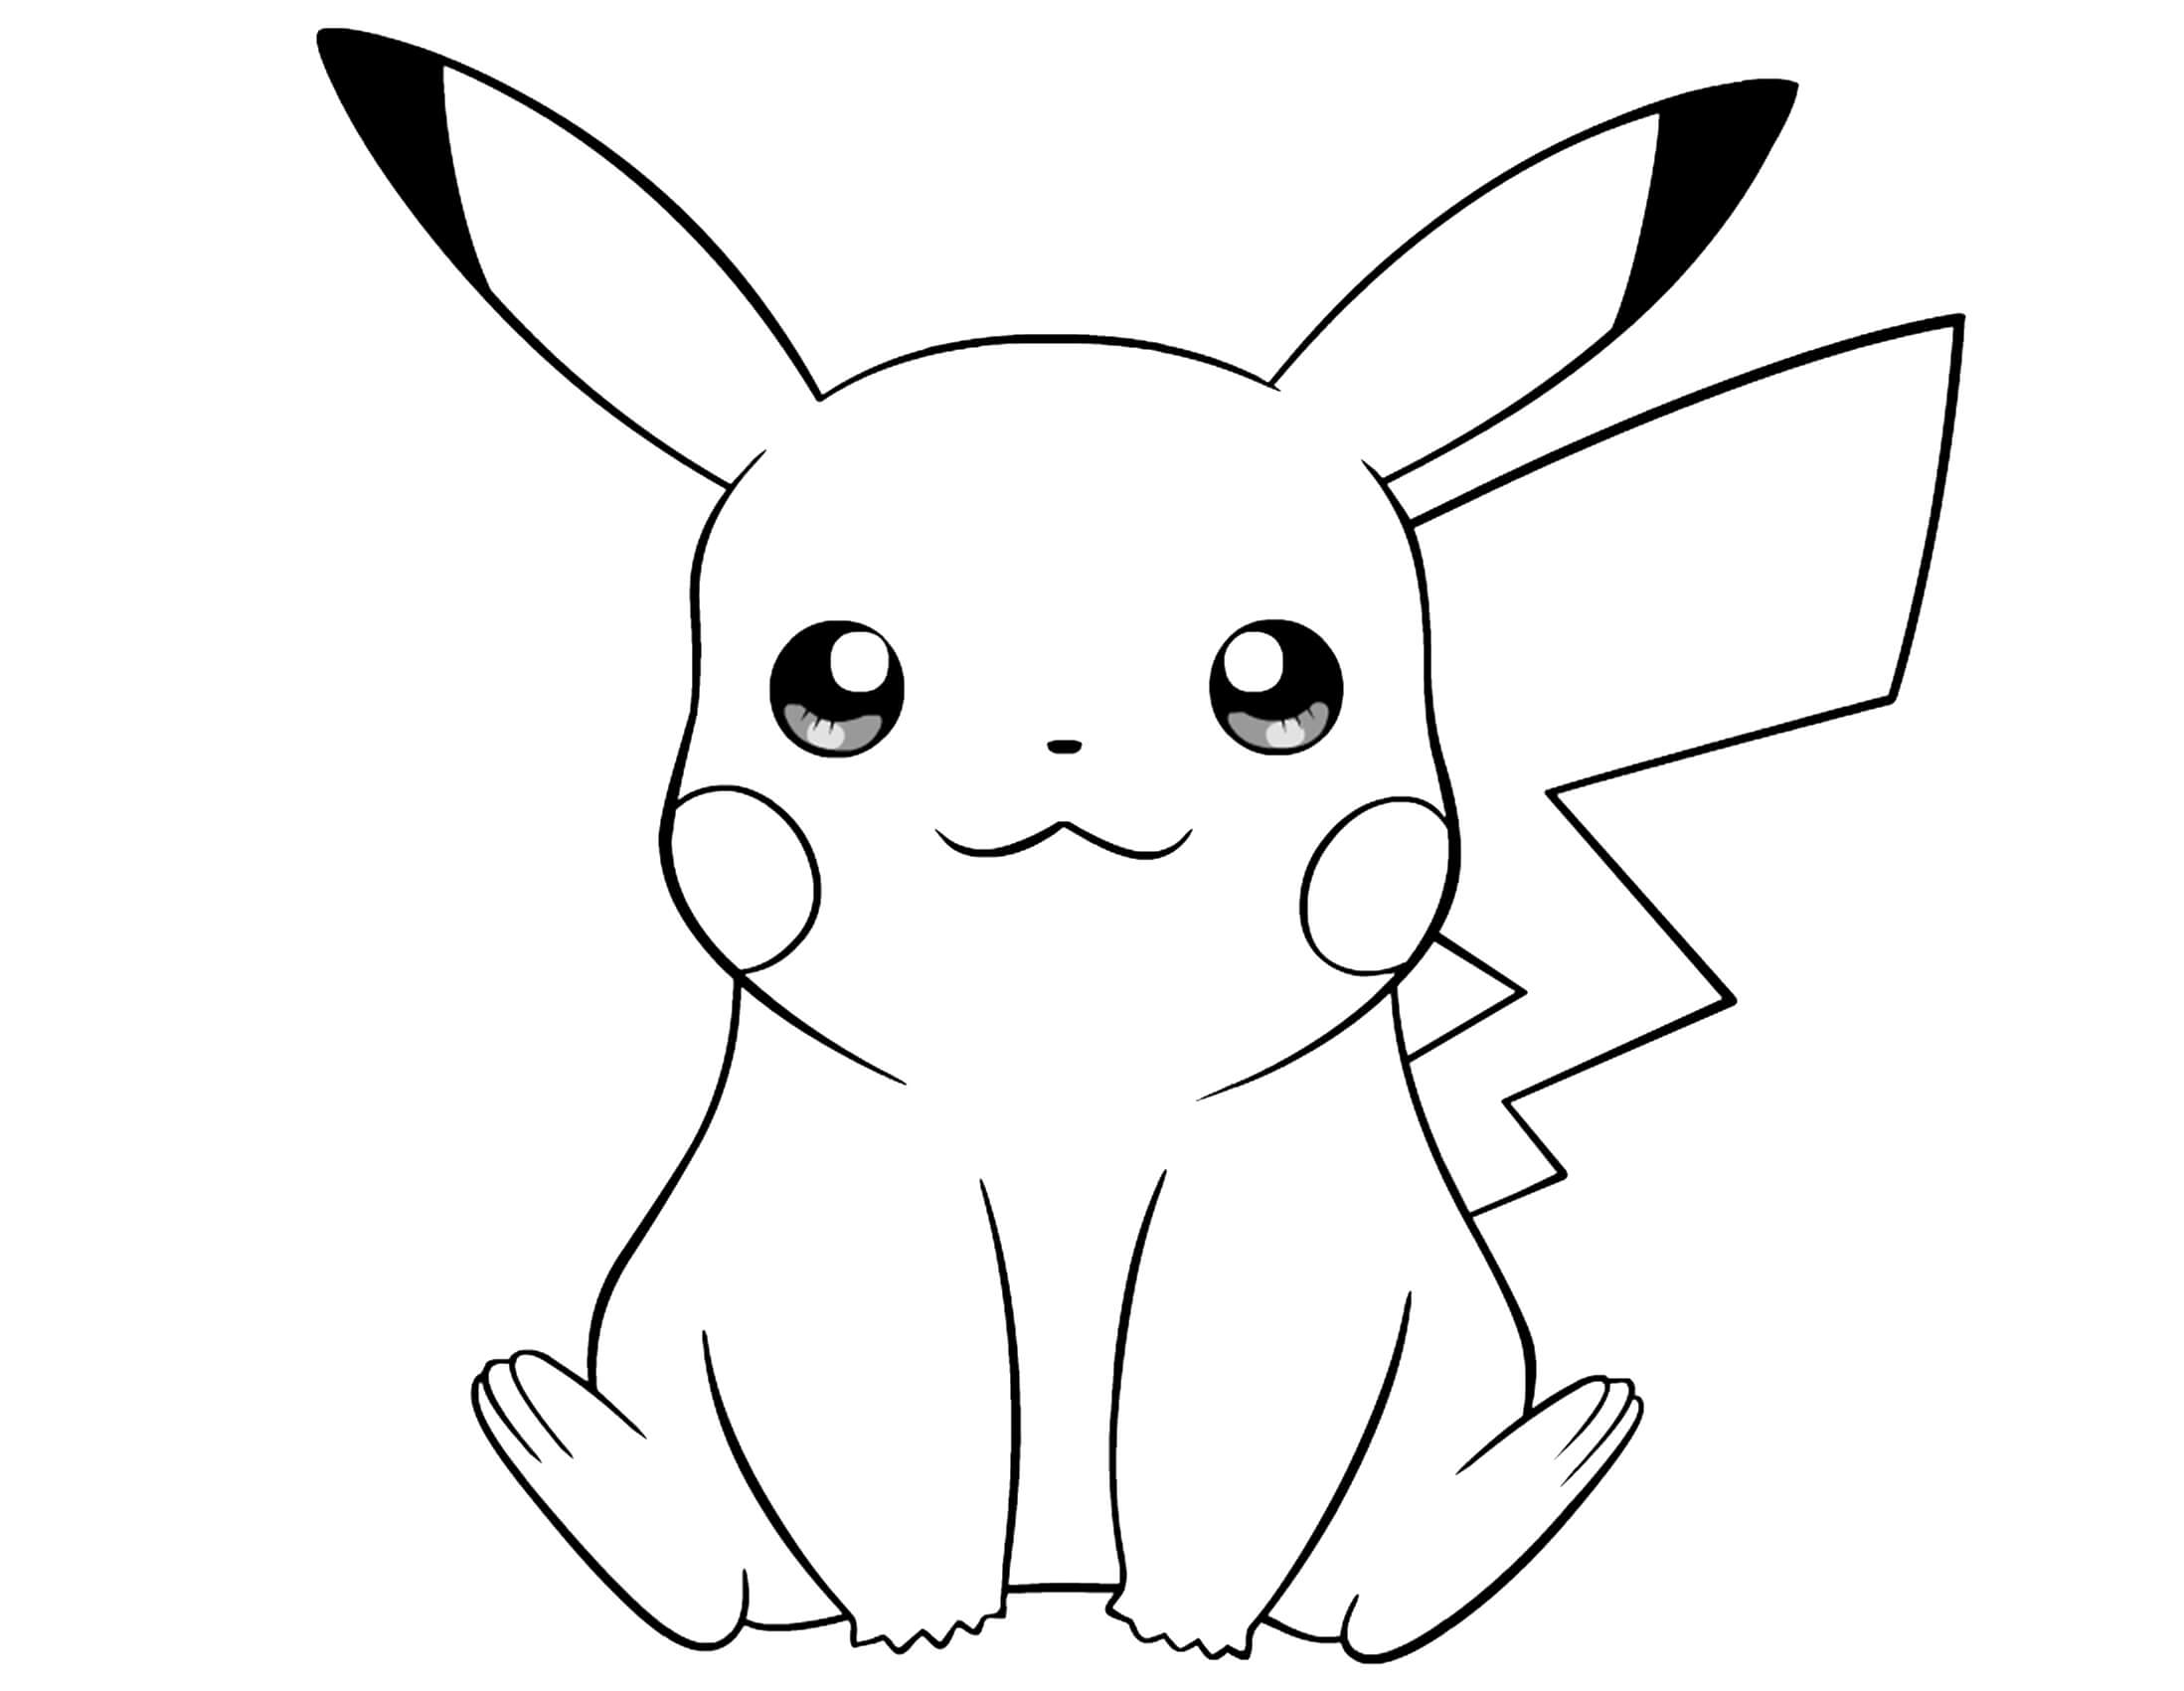 picachu coloring pages adorable pikachu coloring pages 101 coloring picachu pages coloring